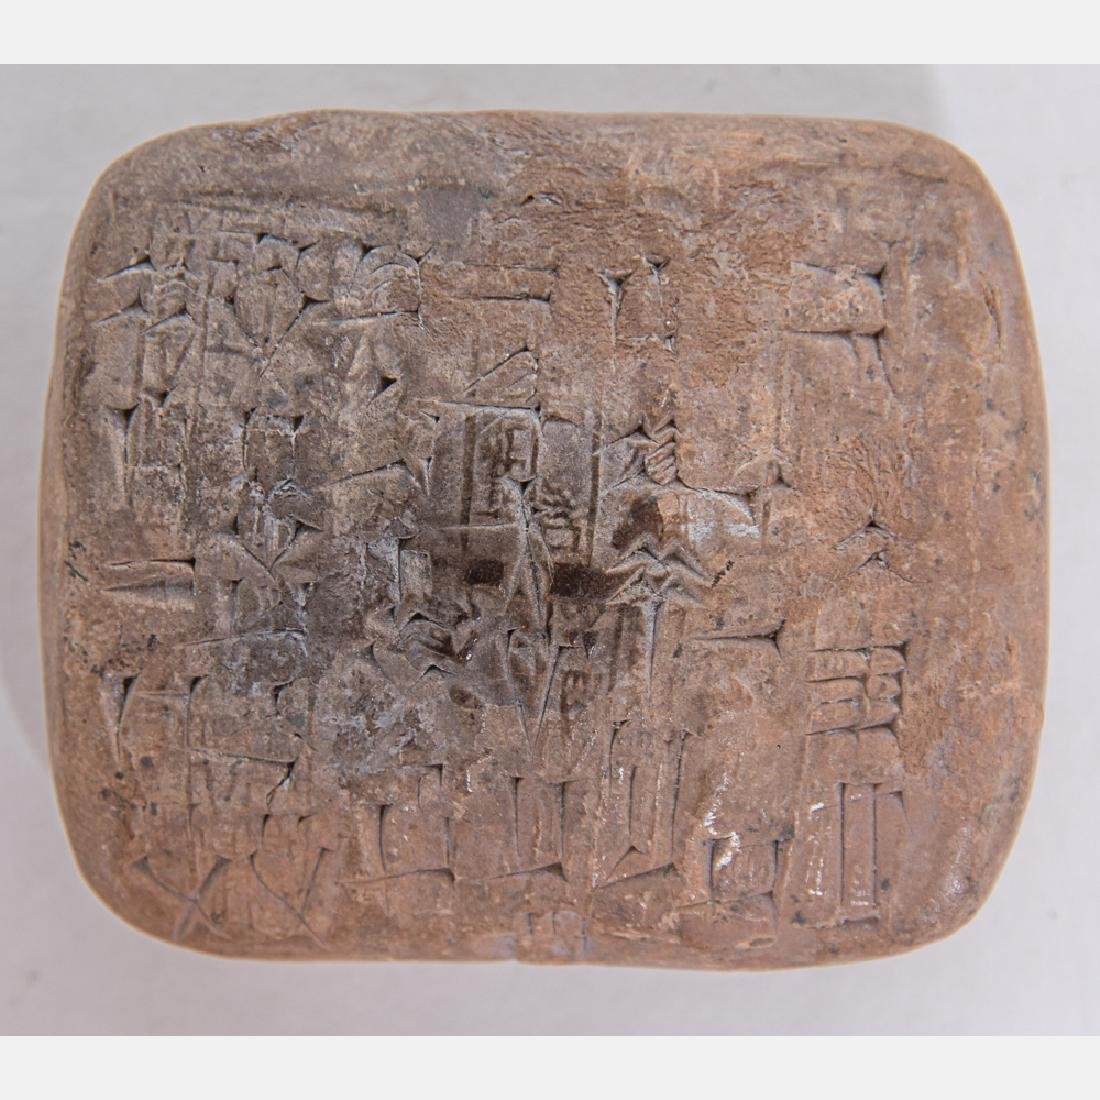 A Cuneiform Tablet from Ancient Sumer, dates from c.